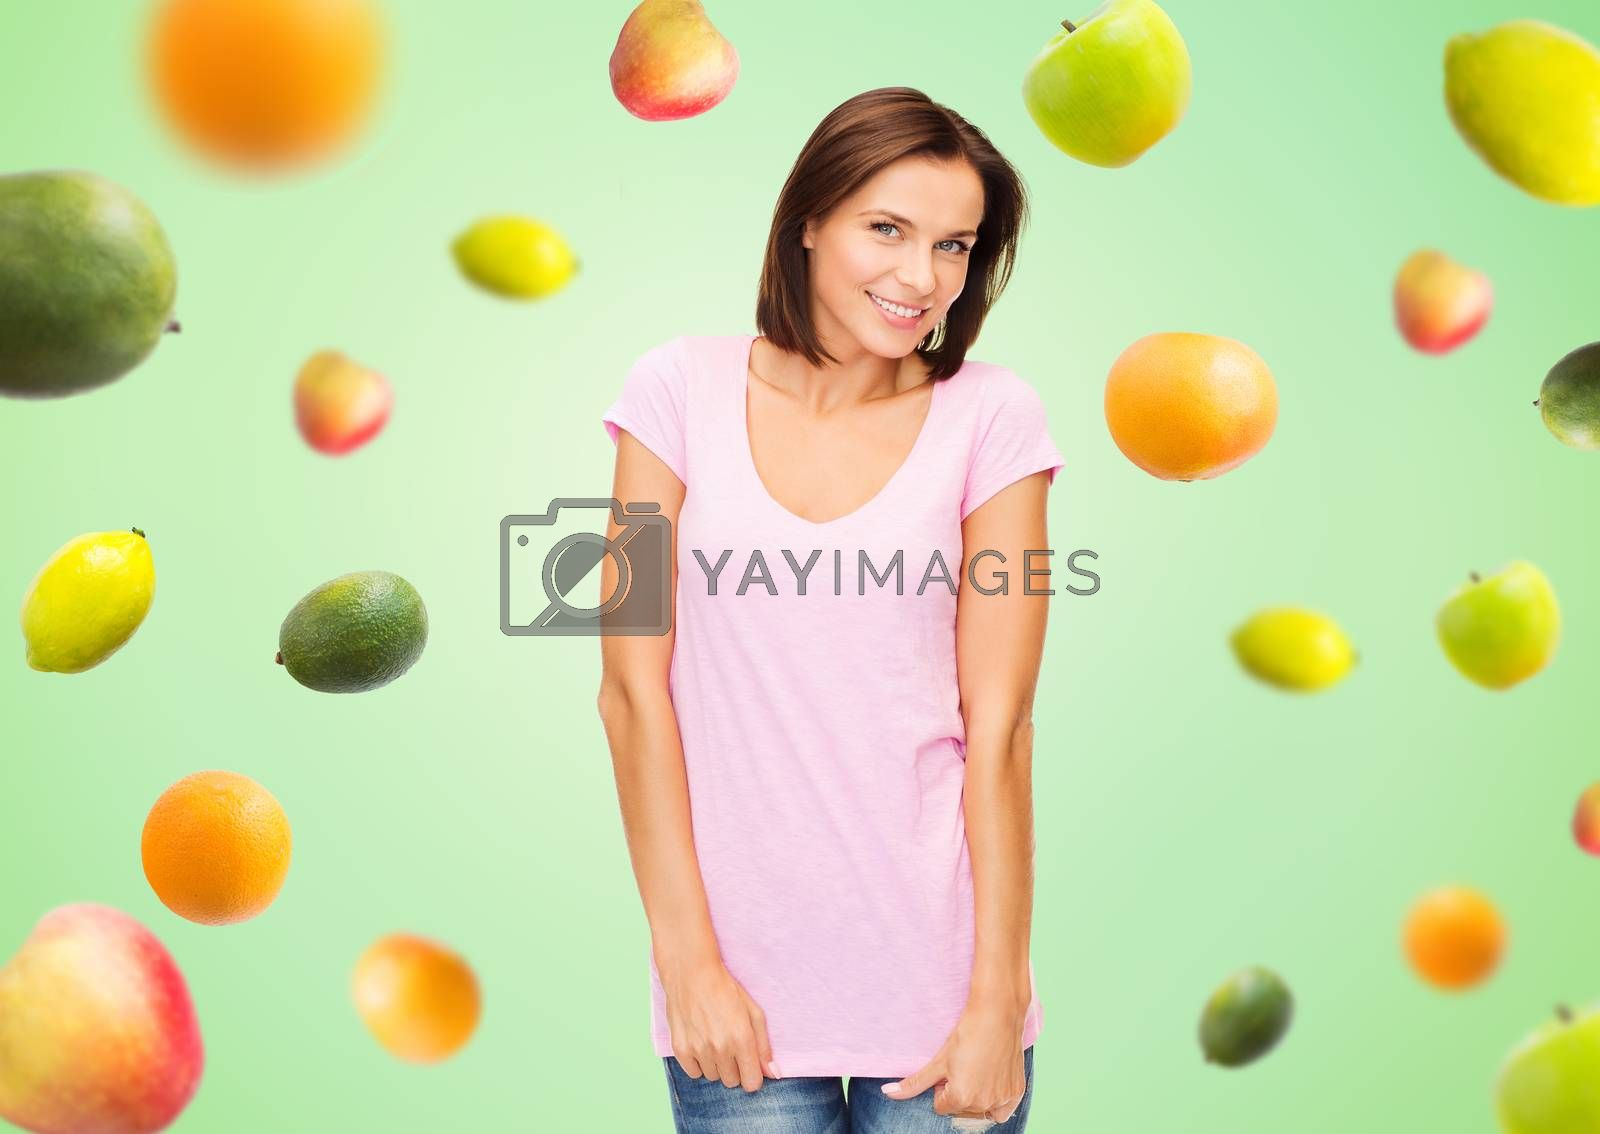 people, advertisement, diet, food and healthy eating concept - happy woman in blank pink t-shirt over fruits on green background